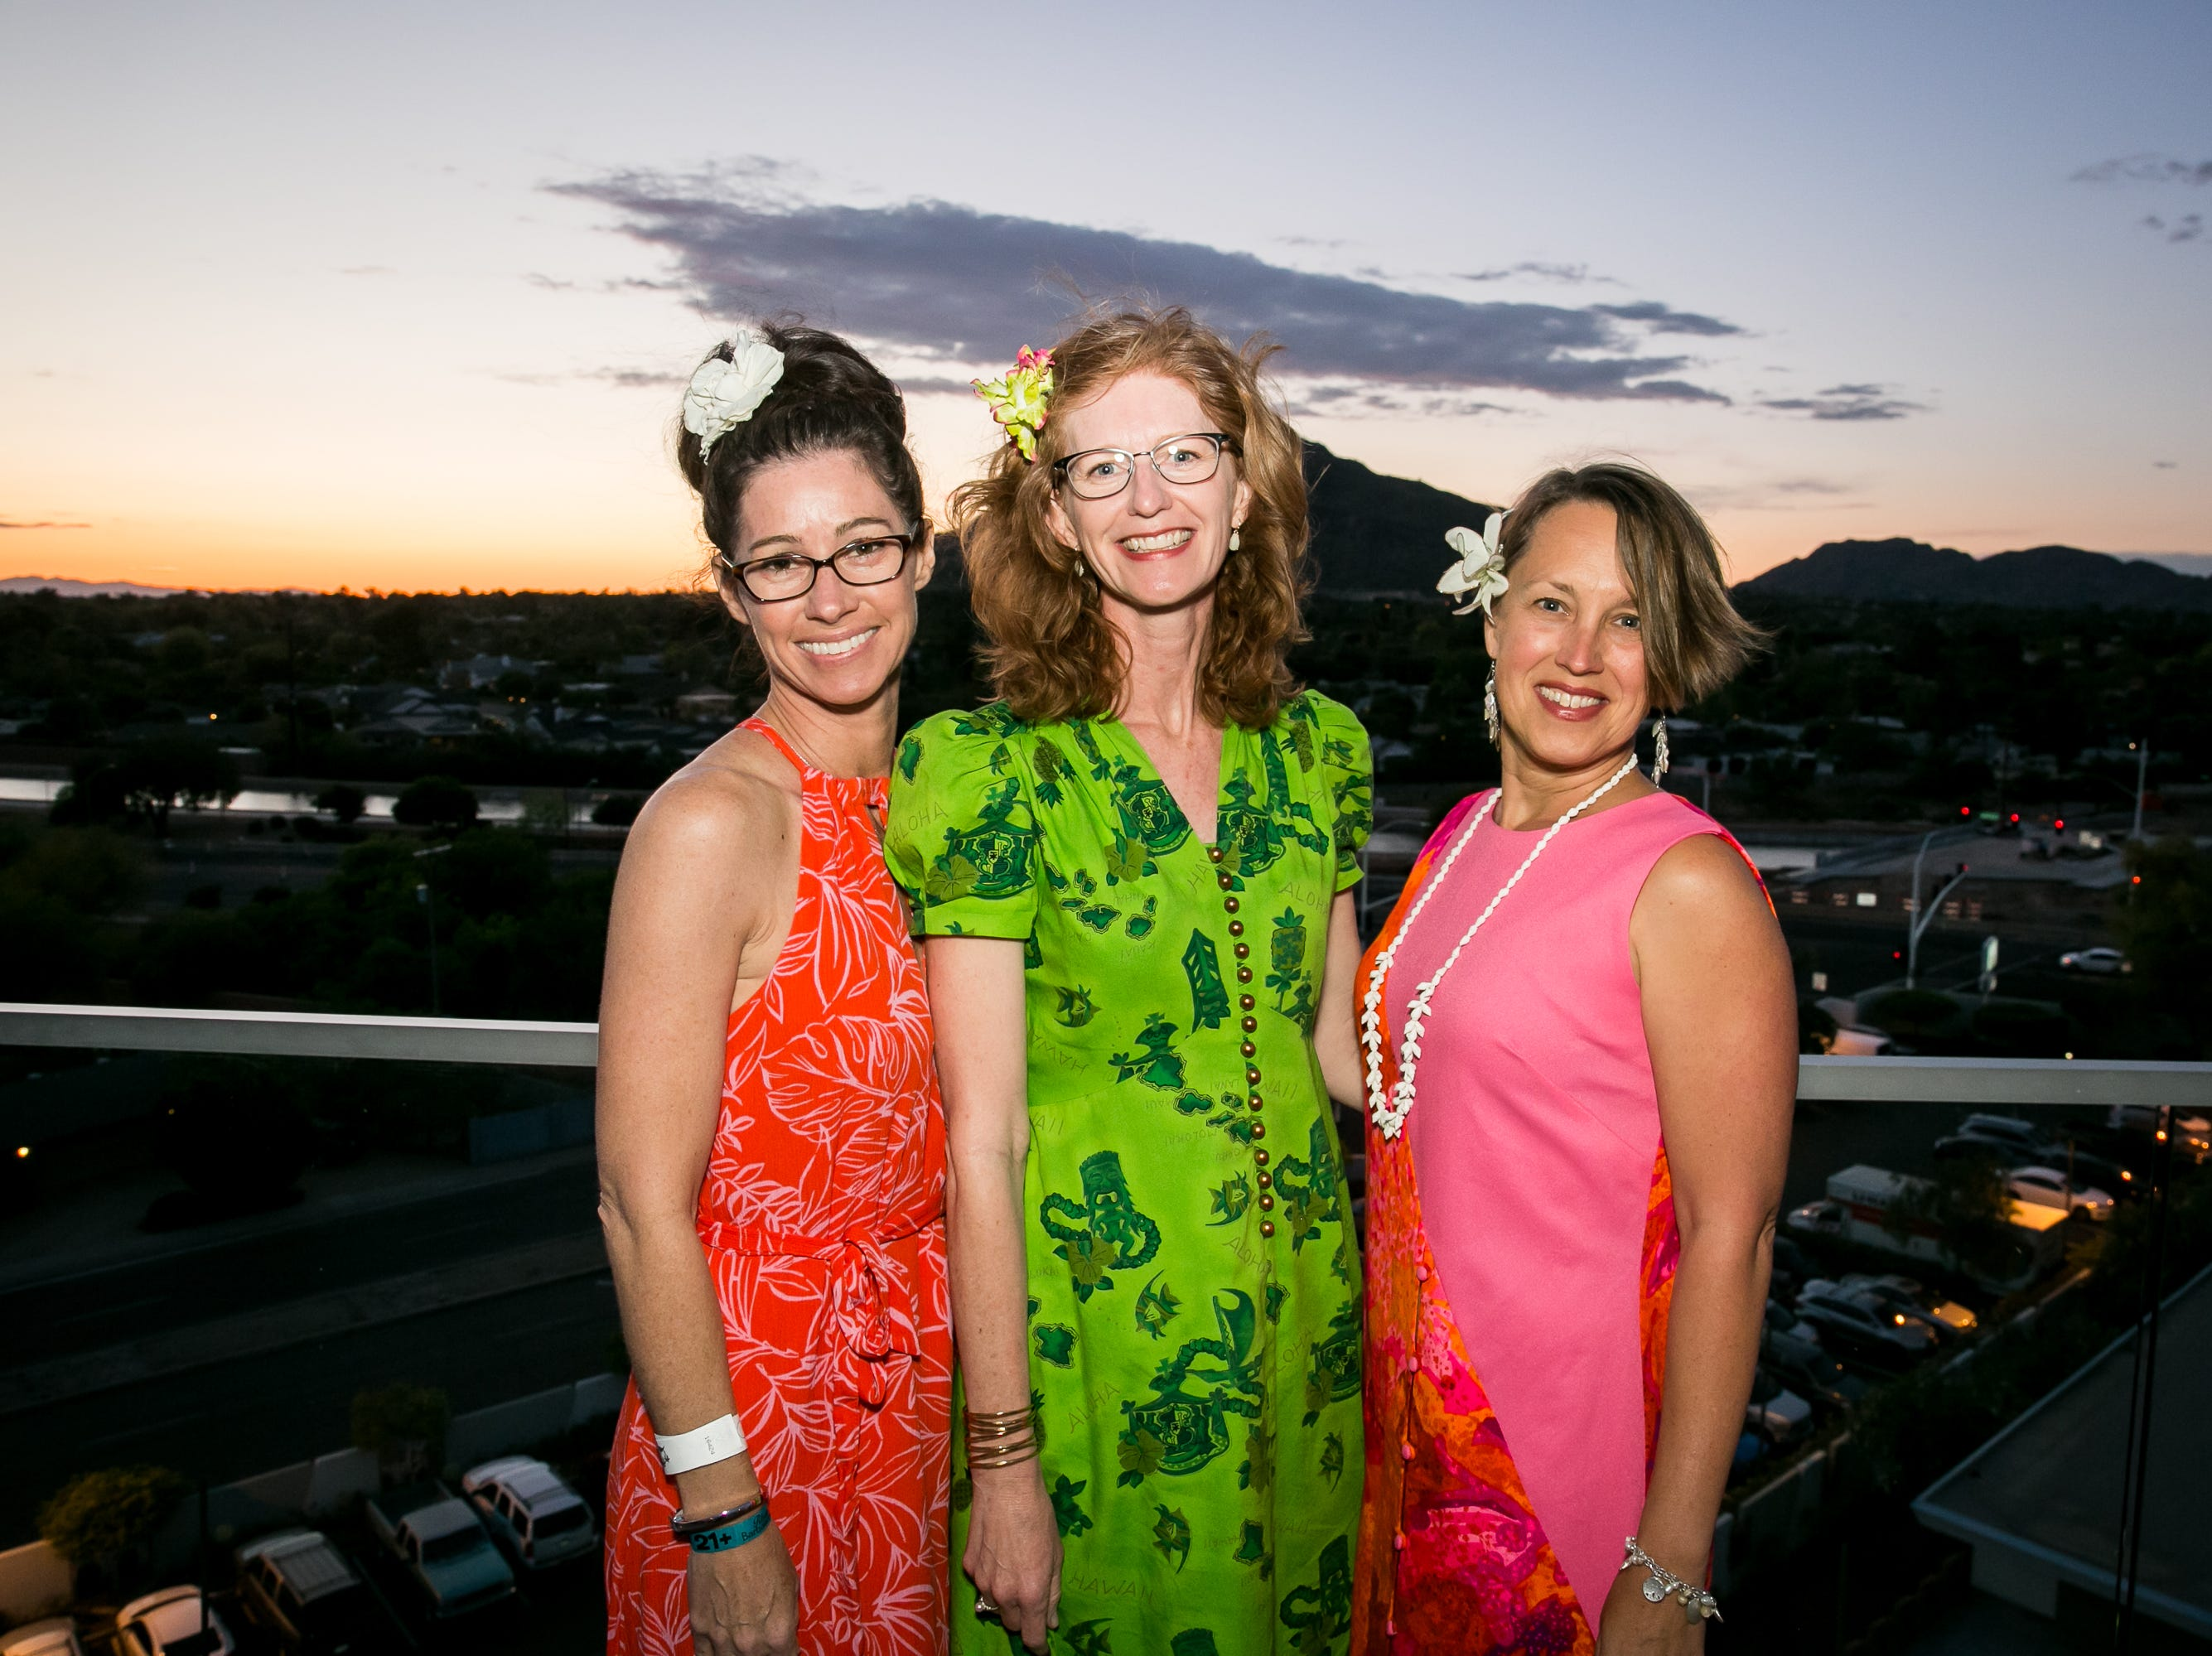 These ladies enjoyed a gorgeous sunset during Arizona Tiki Oasis at Hotel Valley Ho in Scottsdale on April 12, 2019.